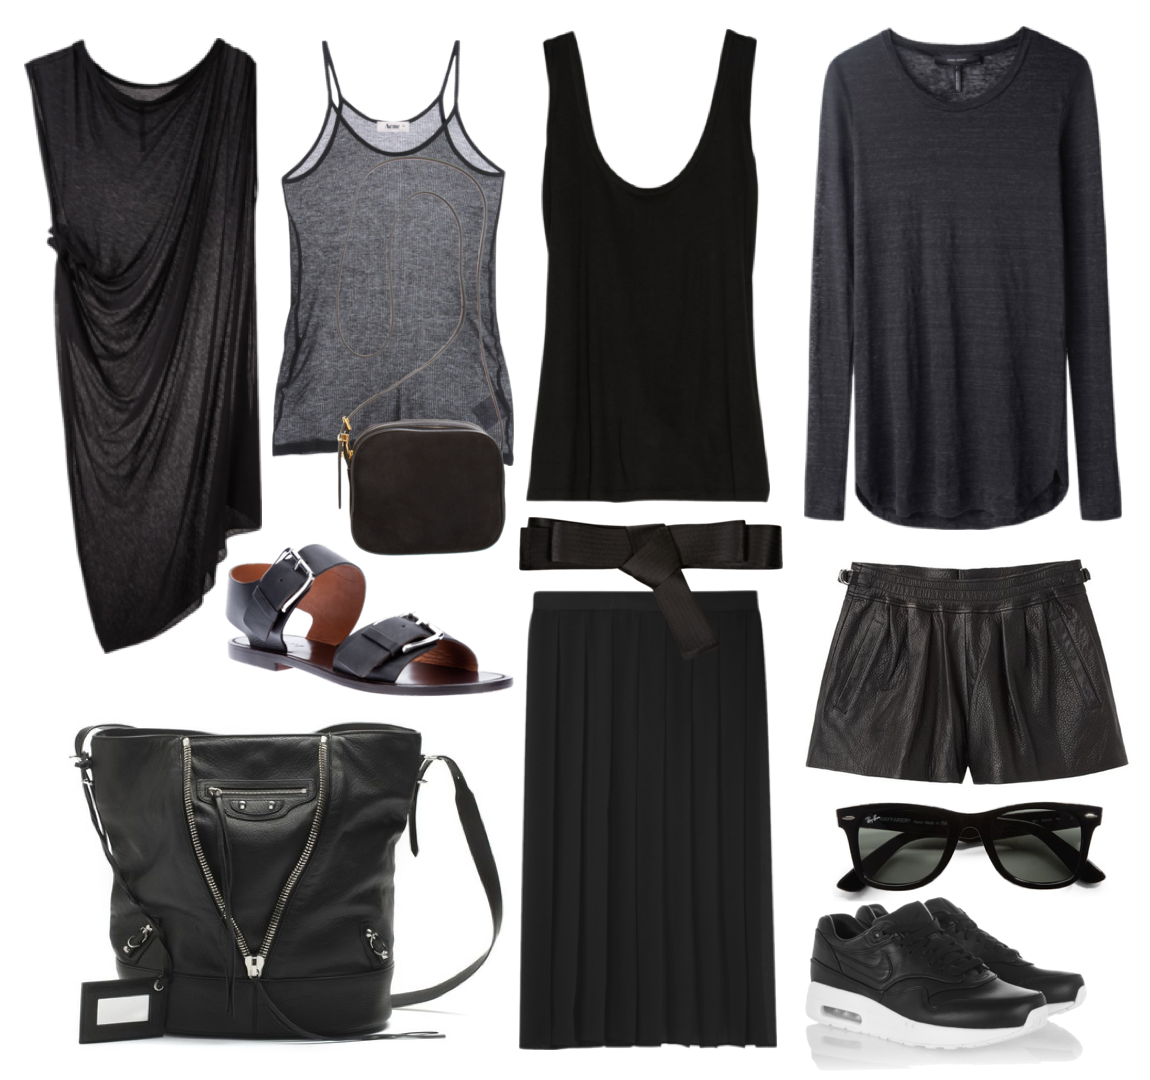 All black essentails - Balenciaga bag, Nike sneakers, The Row bag and clothing, Isabel Marant Etoile top, Lanvin belt, Rick Owens &amp; Acne